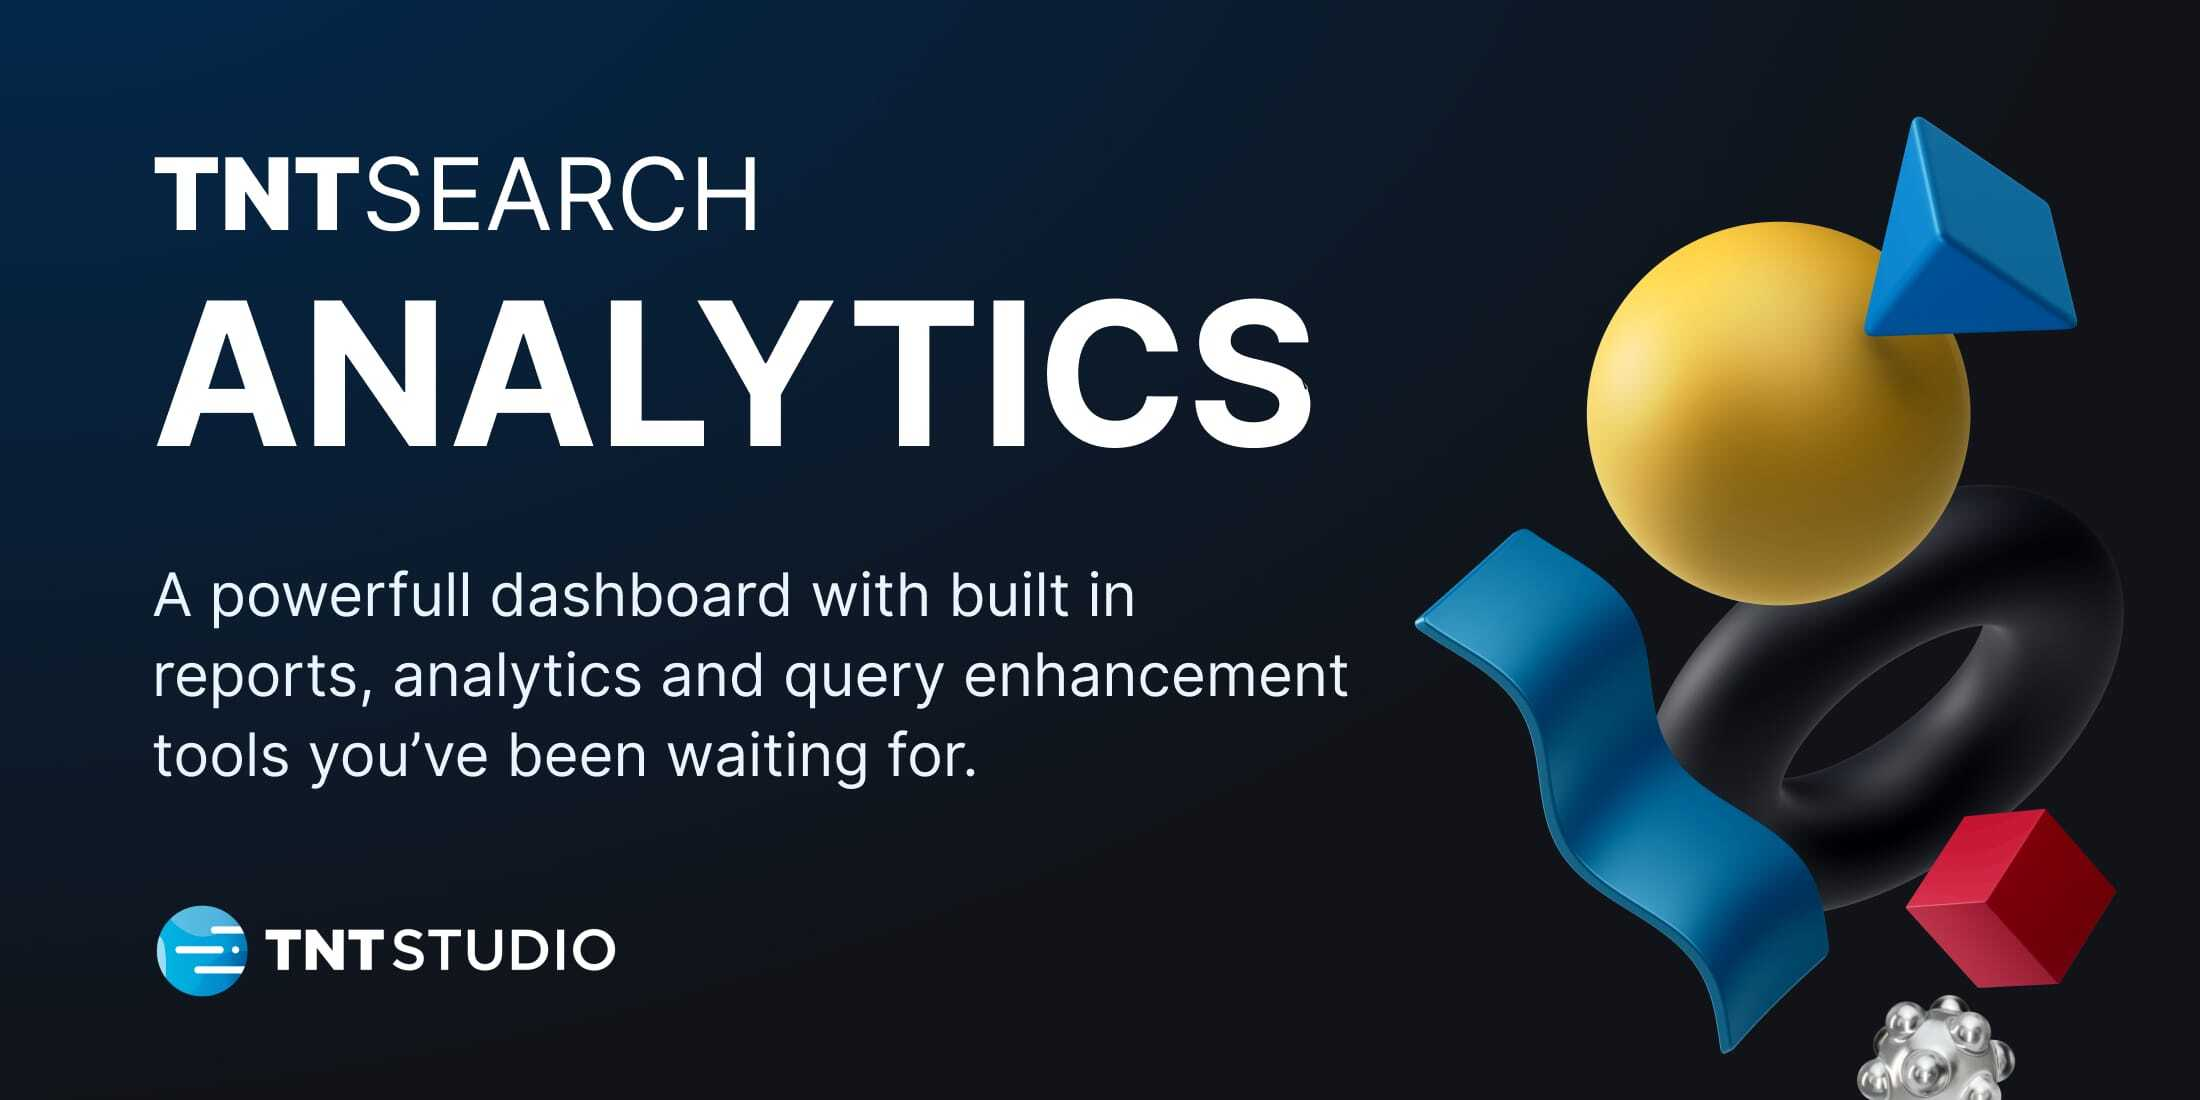 tnt-analytics-banner.jpg